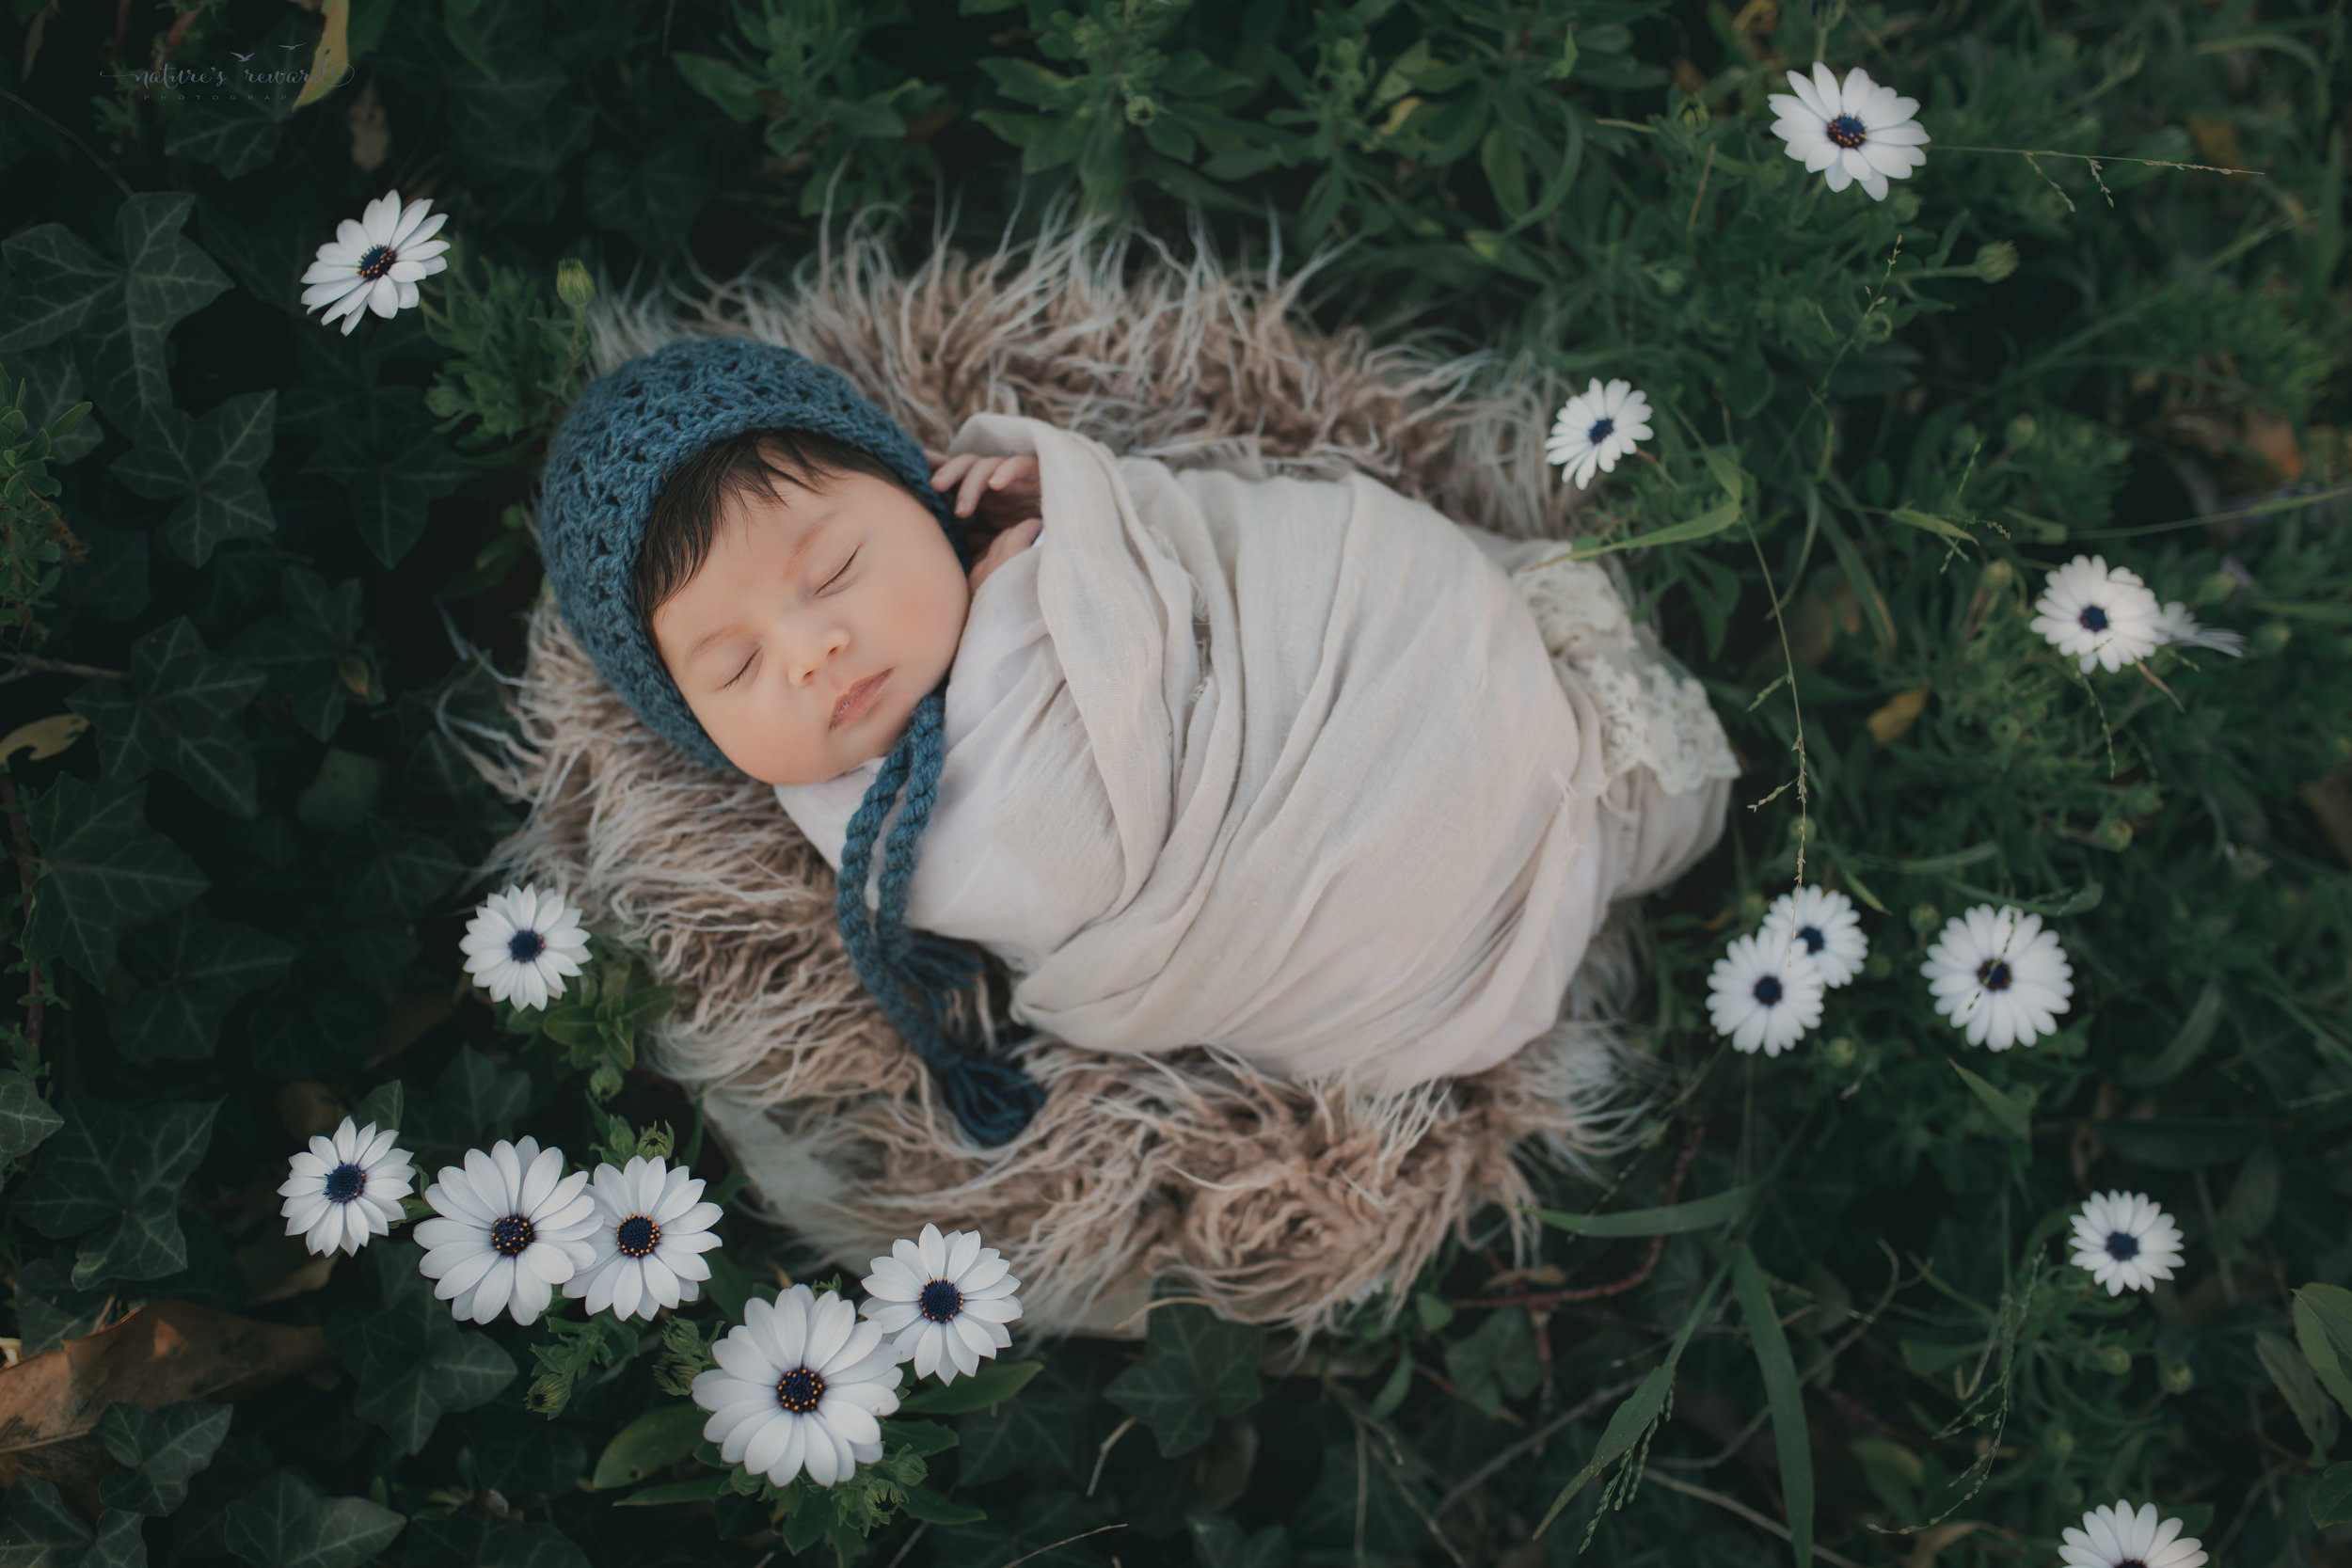 Newborn baby girl in this garden portrait of flowers, a portrait by Nature's Reward Photography